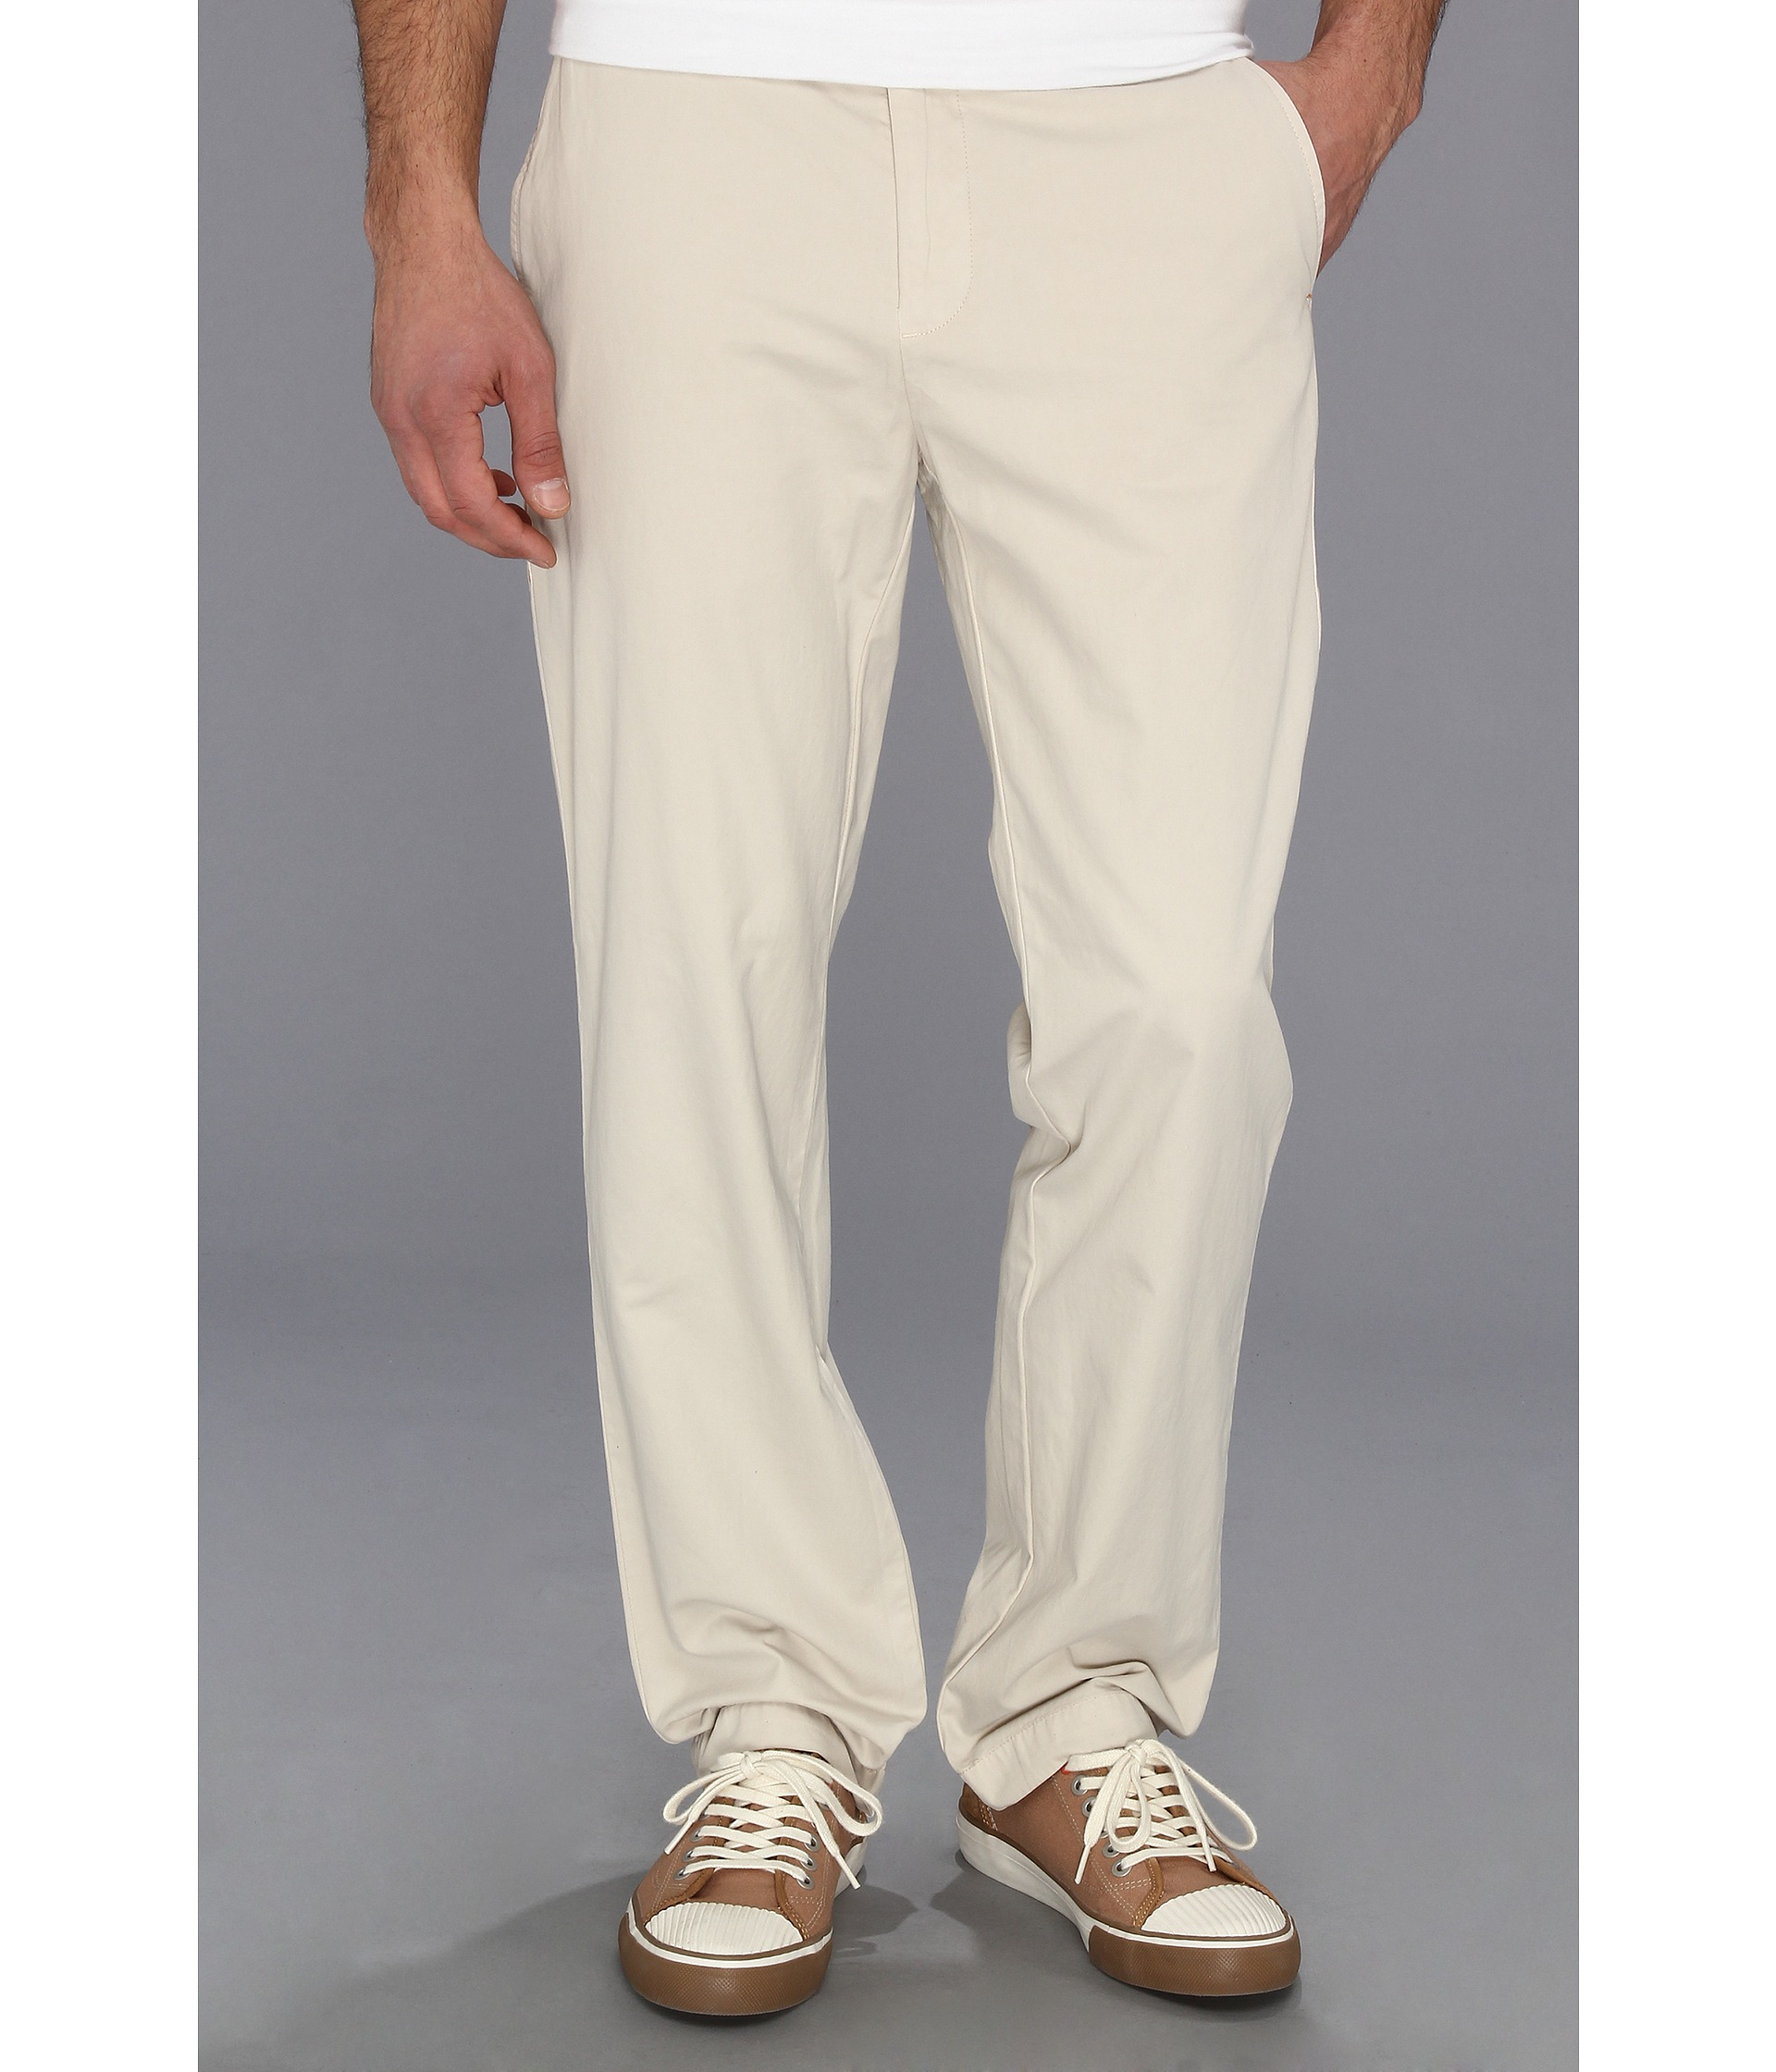 7685eda7 Tommy Bahama Del Chino Authentic Fit Pants in Natural for Men - Lyst